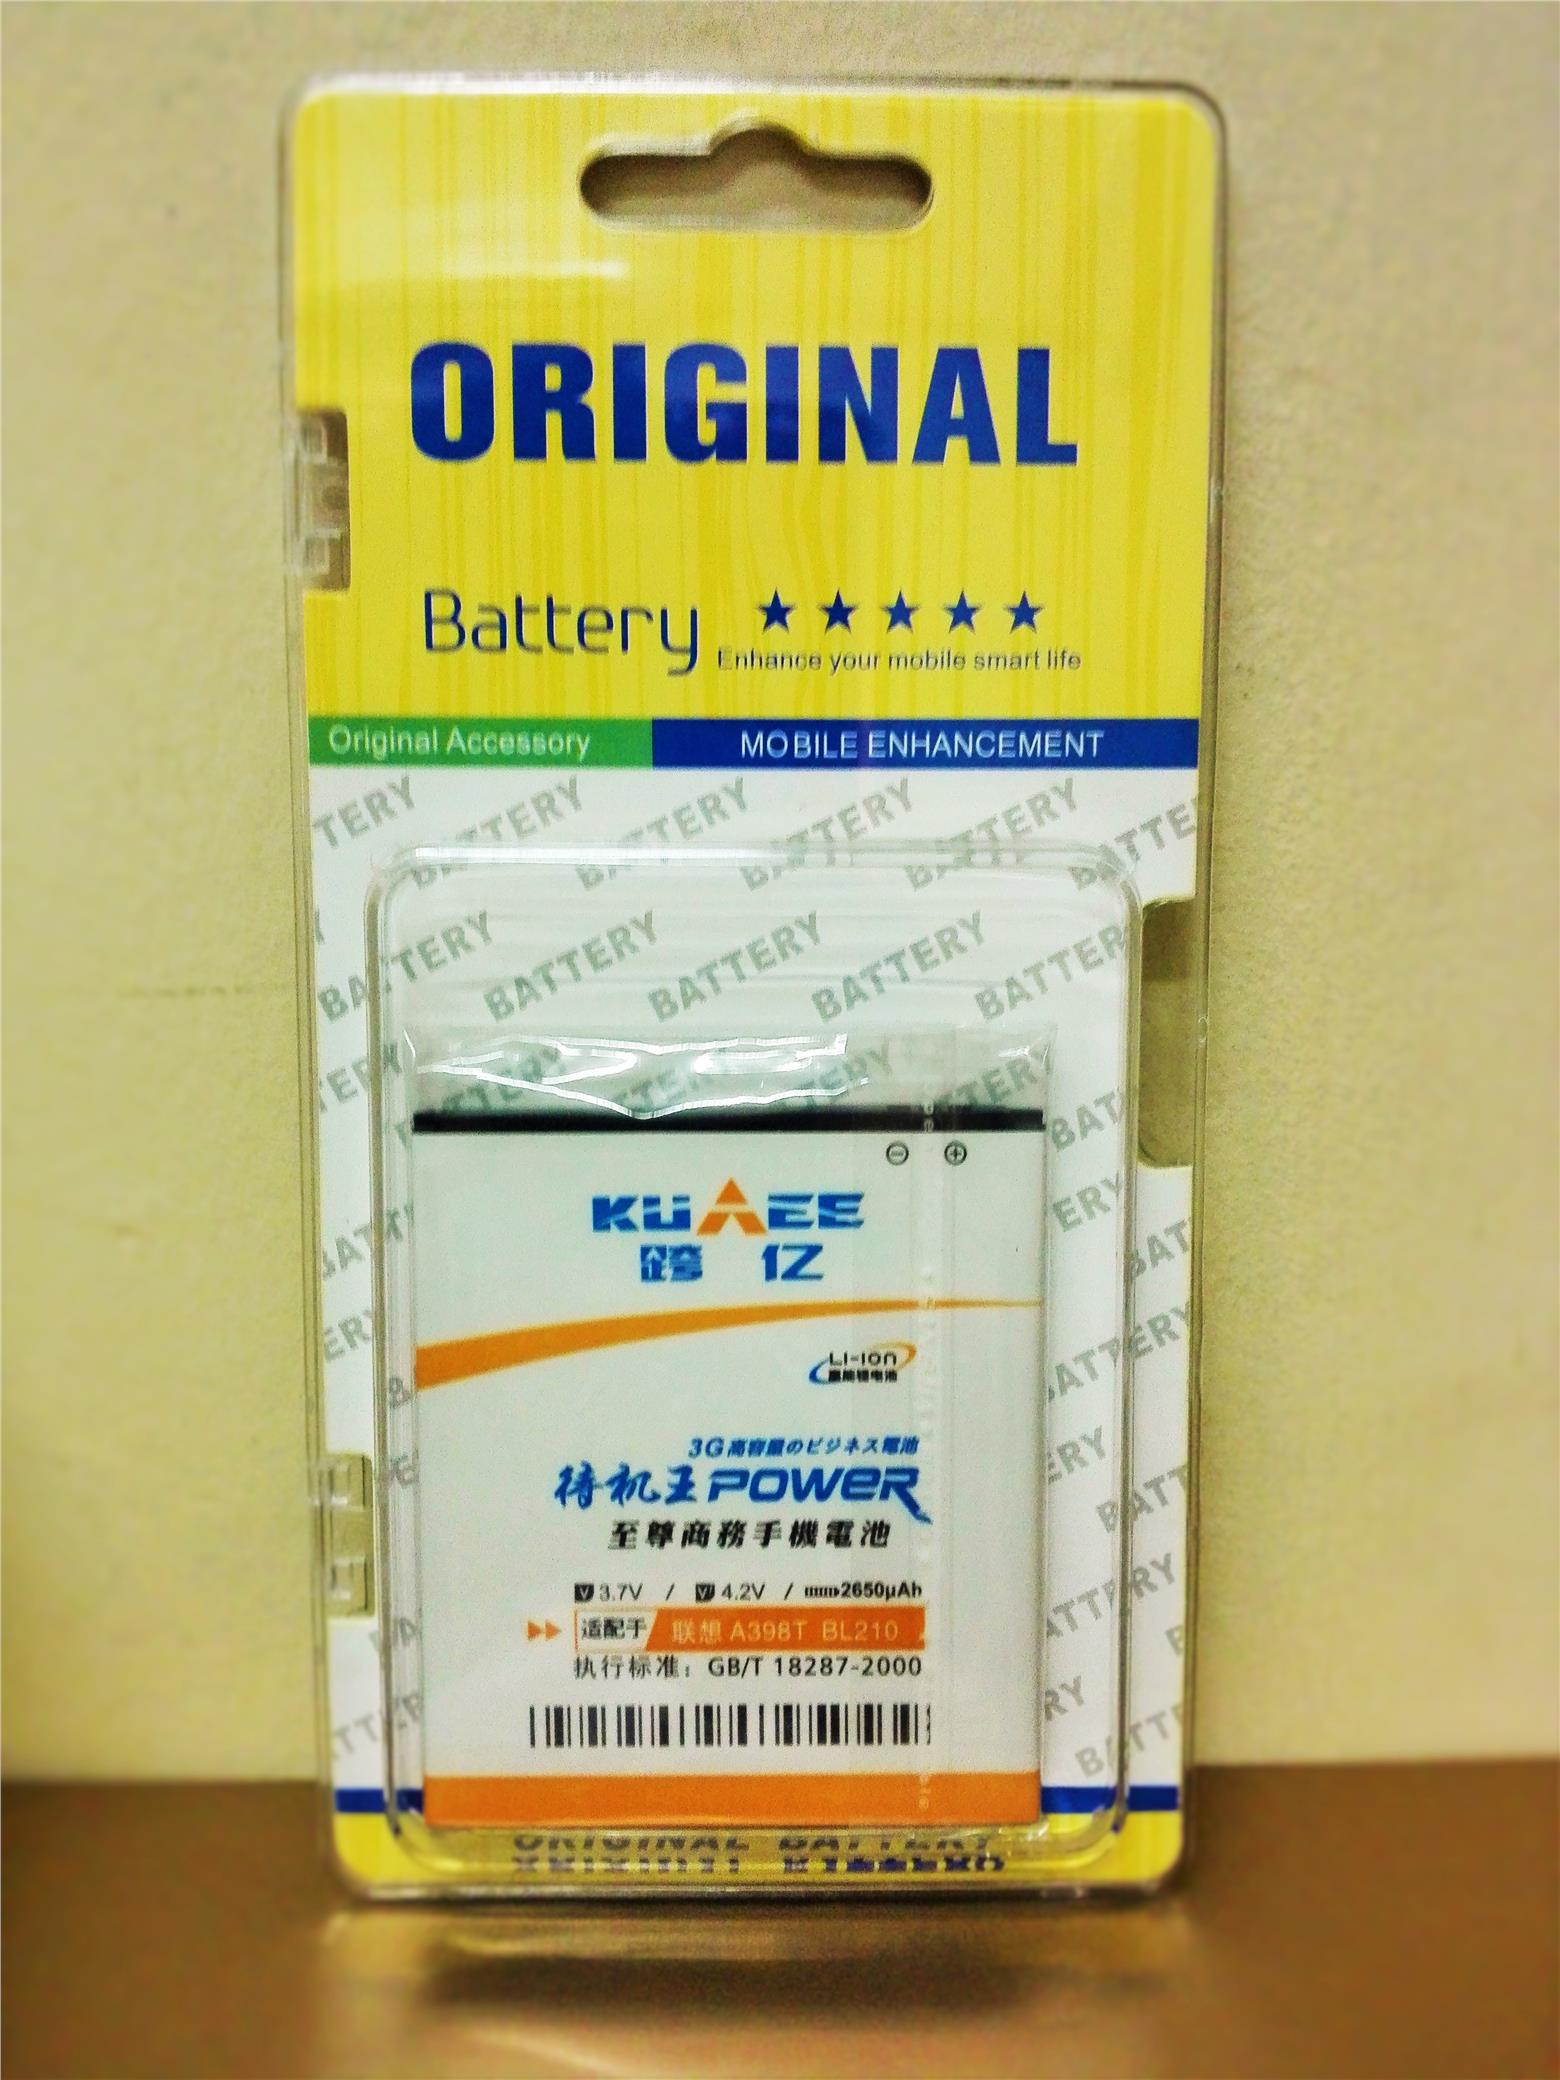 KUAEE BATTERY FOR SAMSUNG GALAXY NOTE 2 N7100